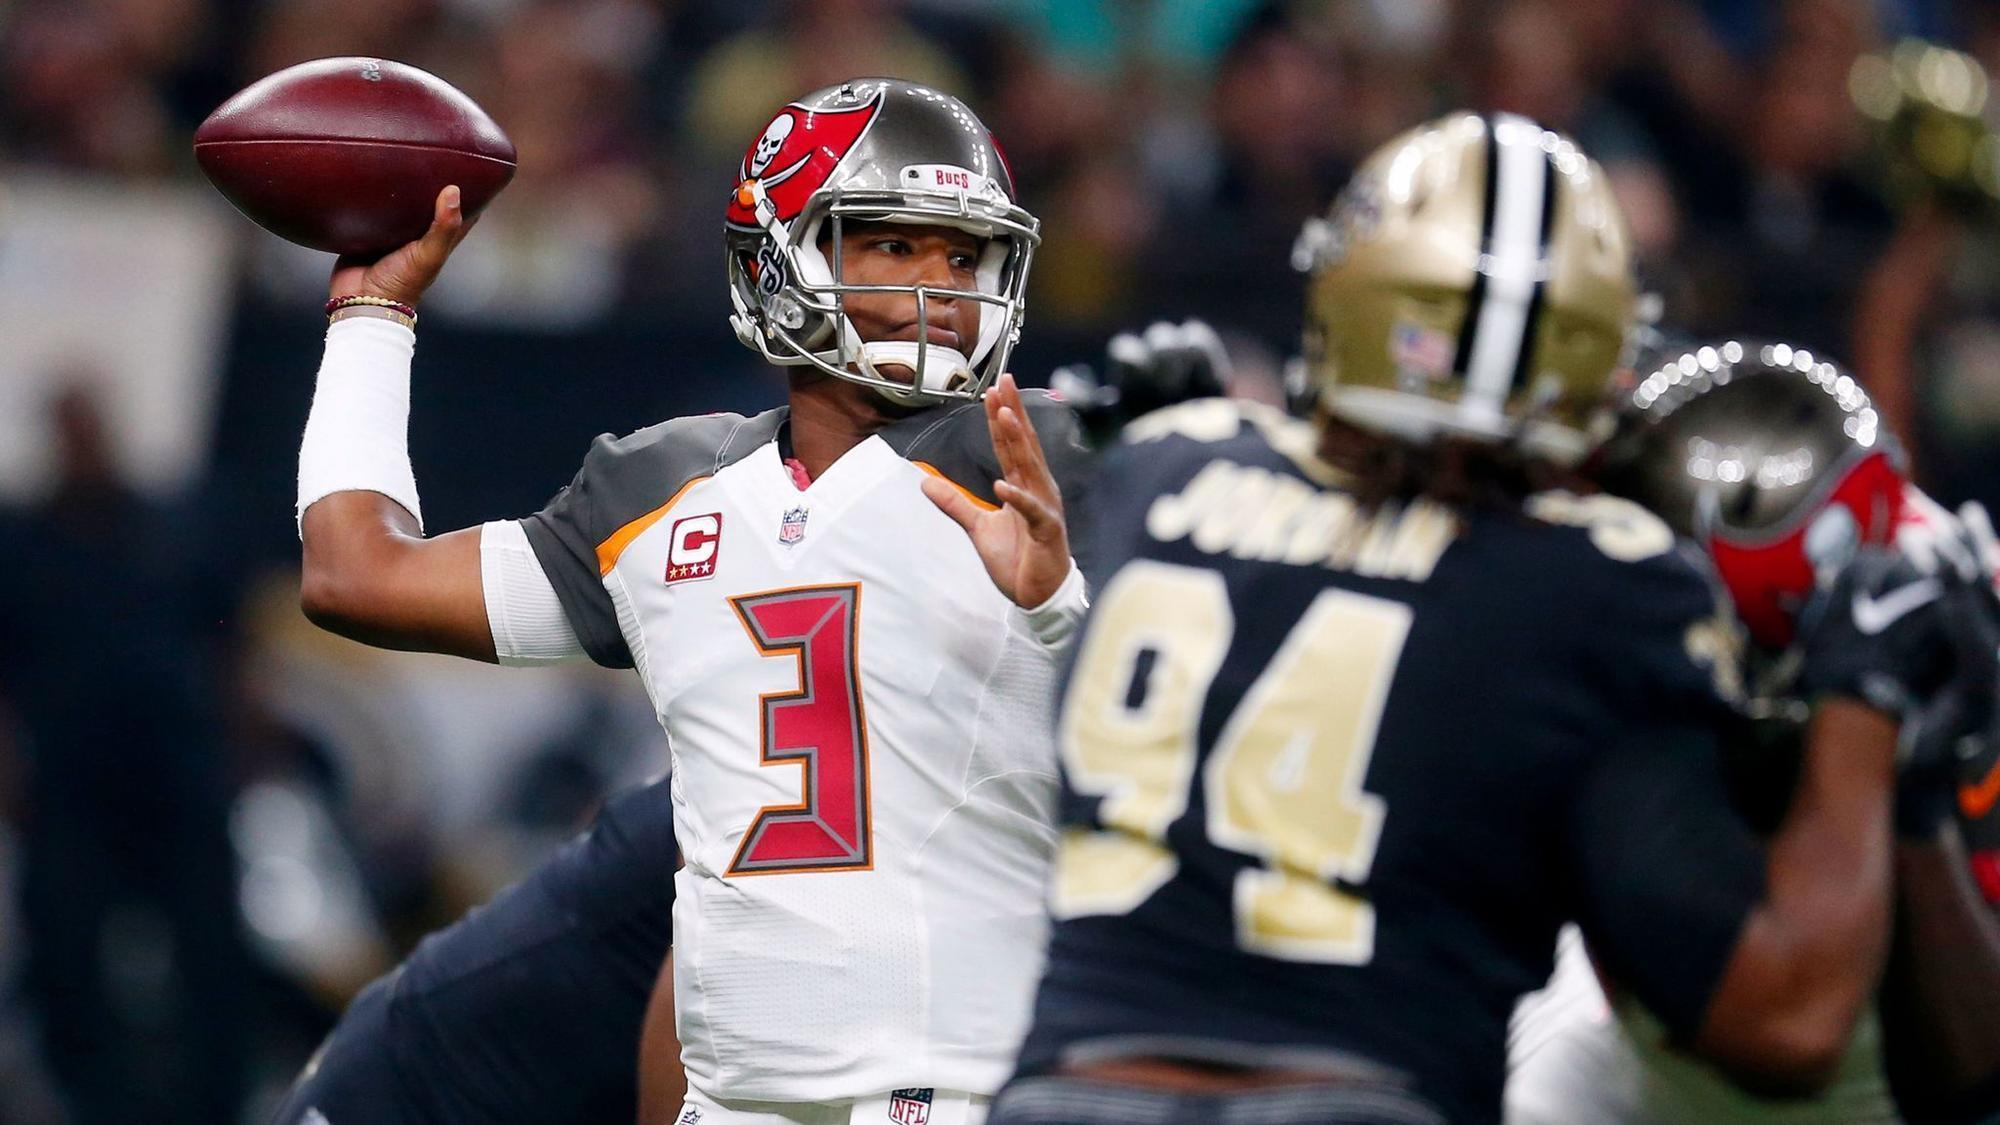 Buccaneers QB Jameis Winston expected to miss game vs Dolphins on